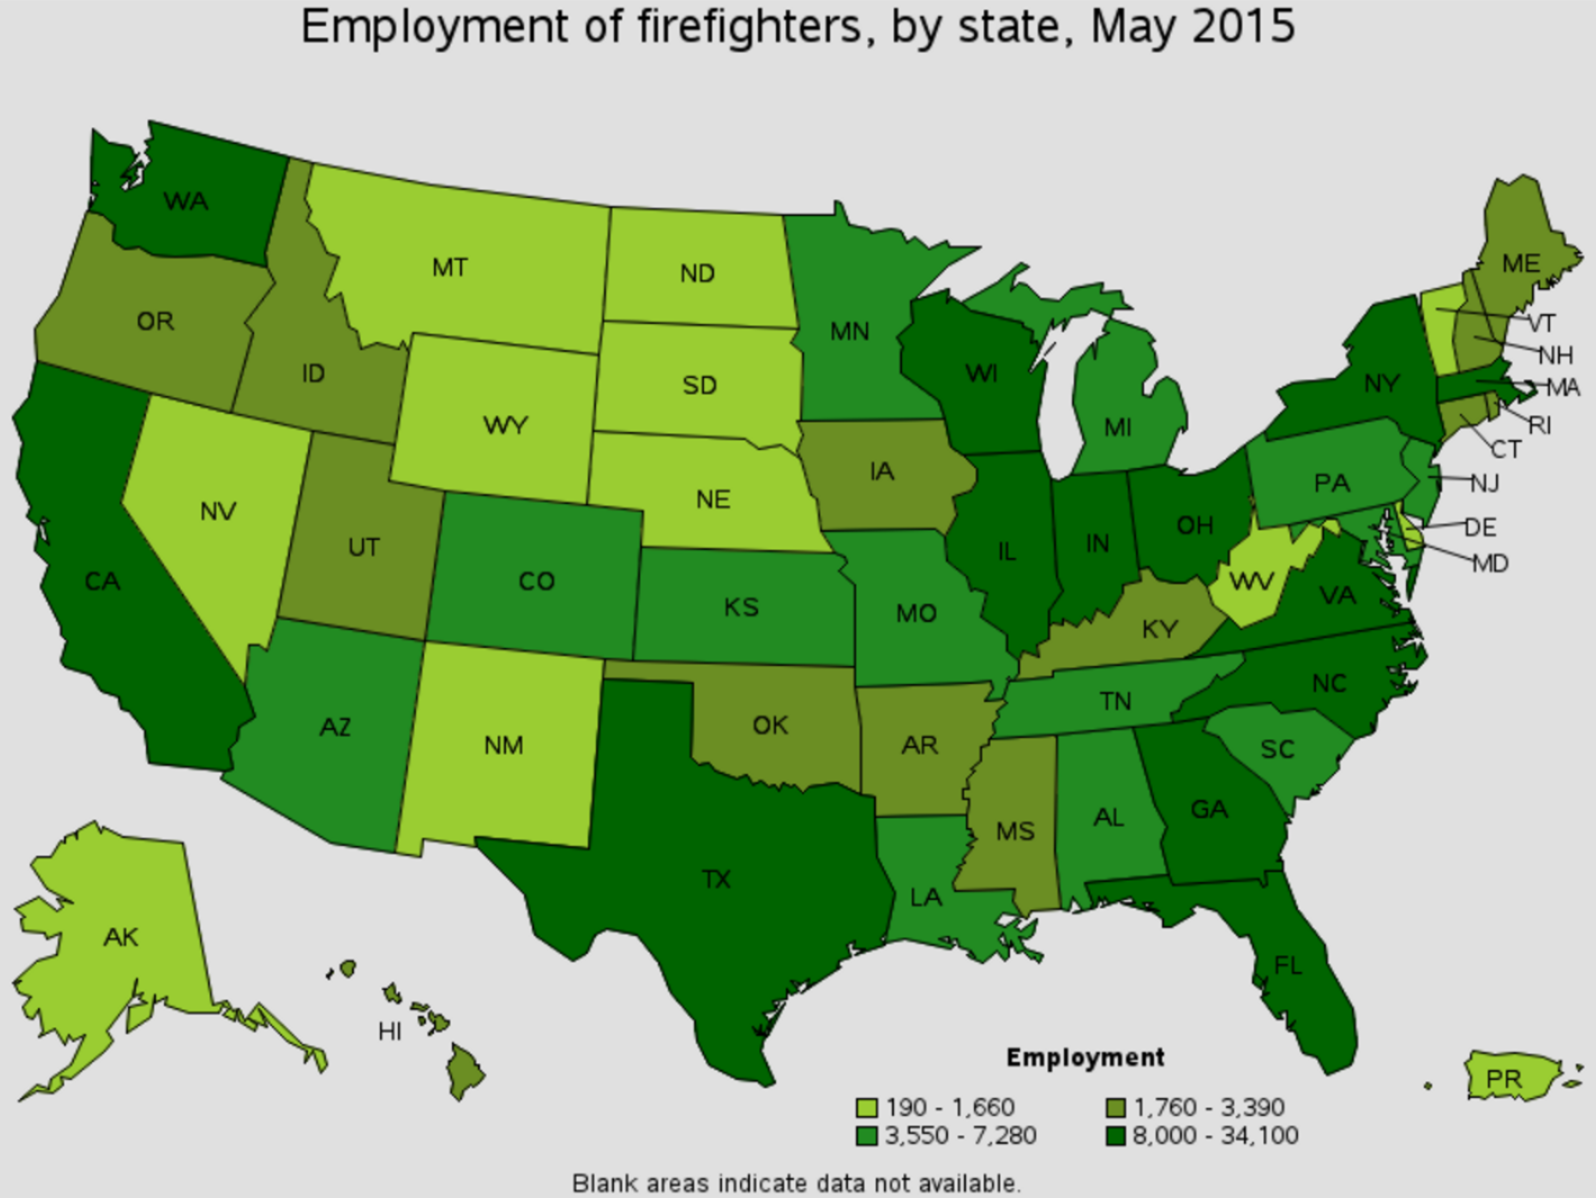 firefighter job outlook by state Baton Rouge Louisiana